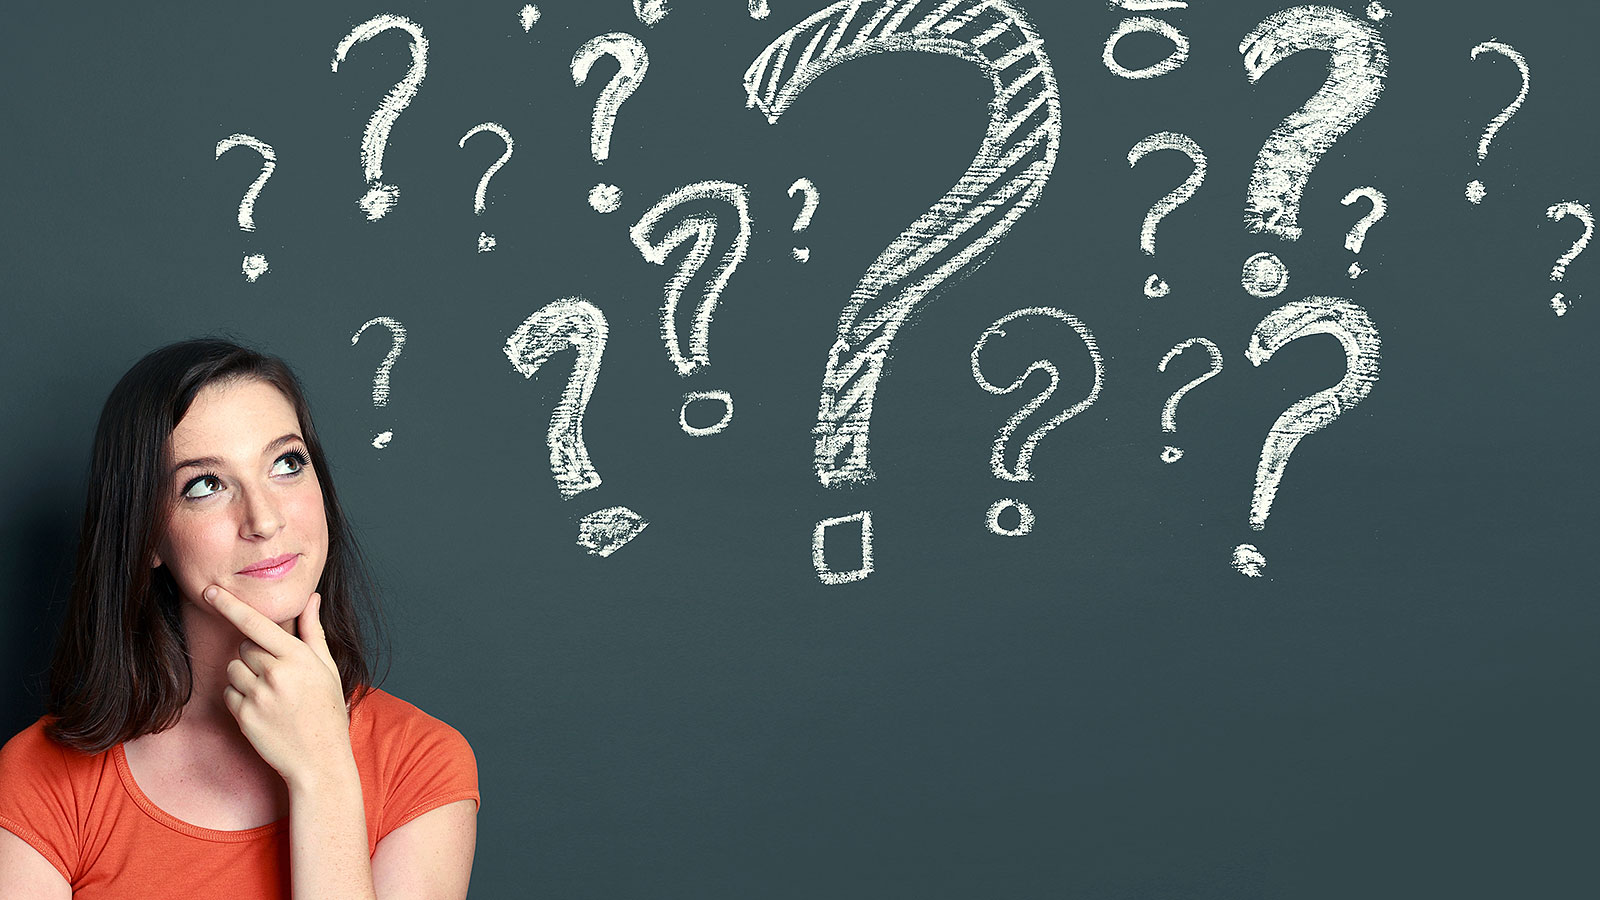 4 questions (and tips) that will transform your culture